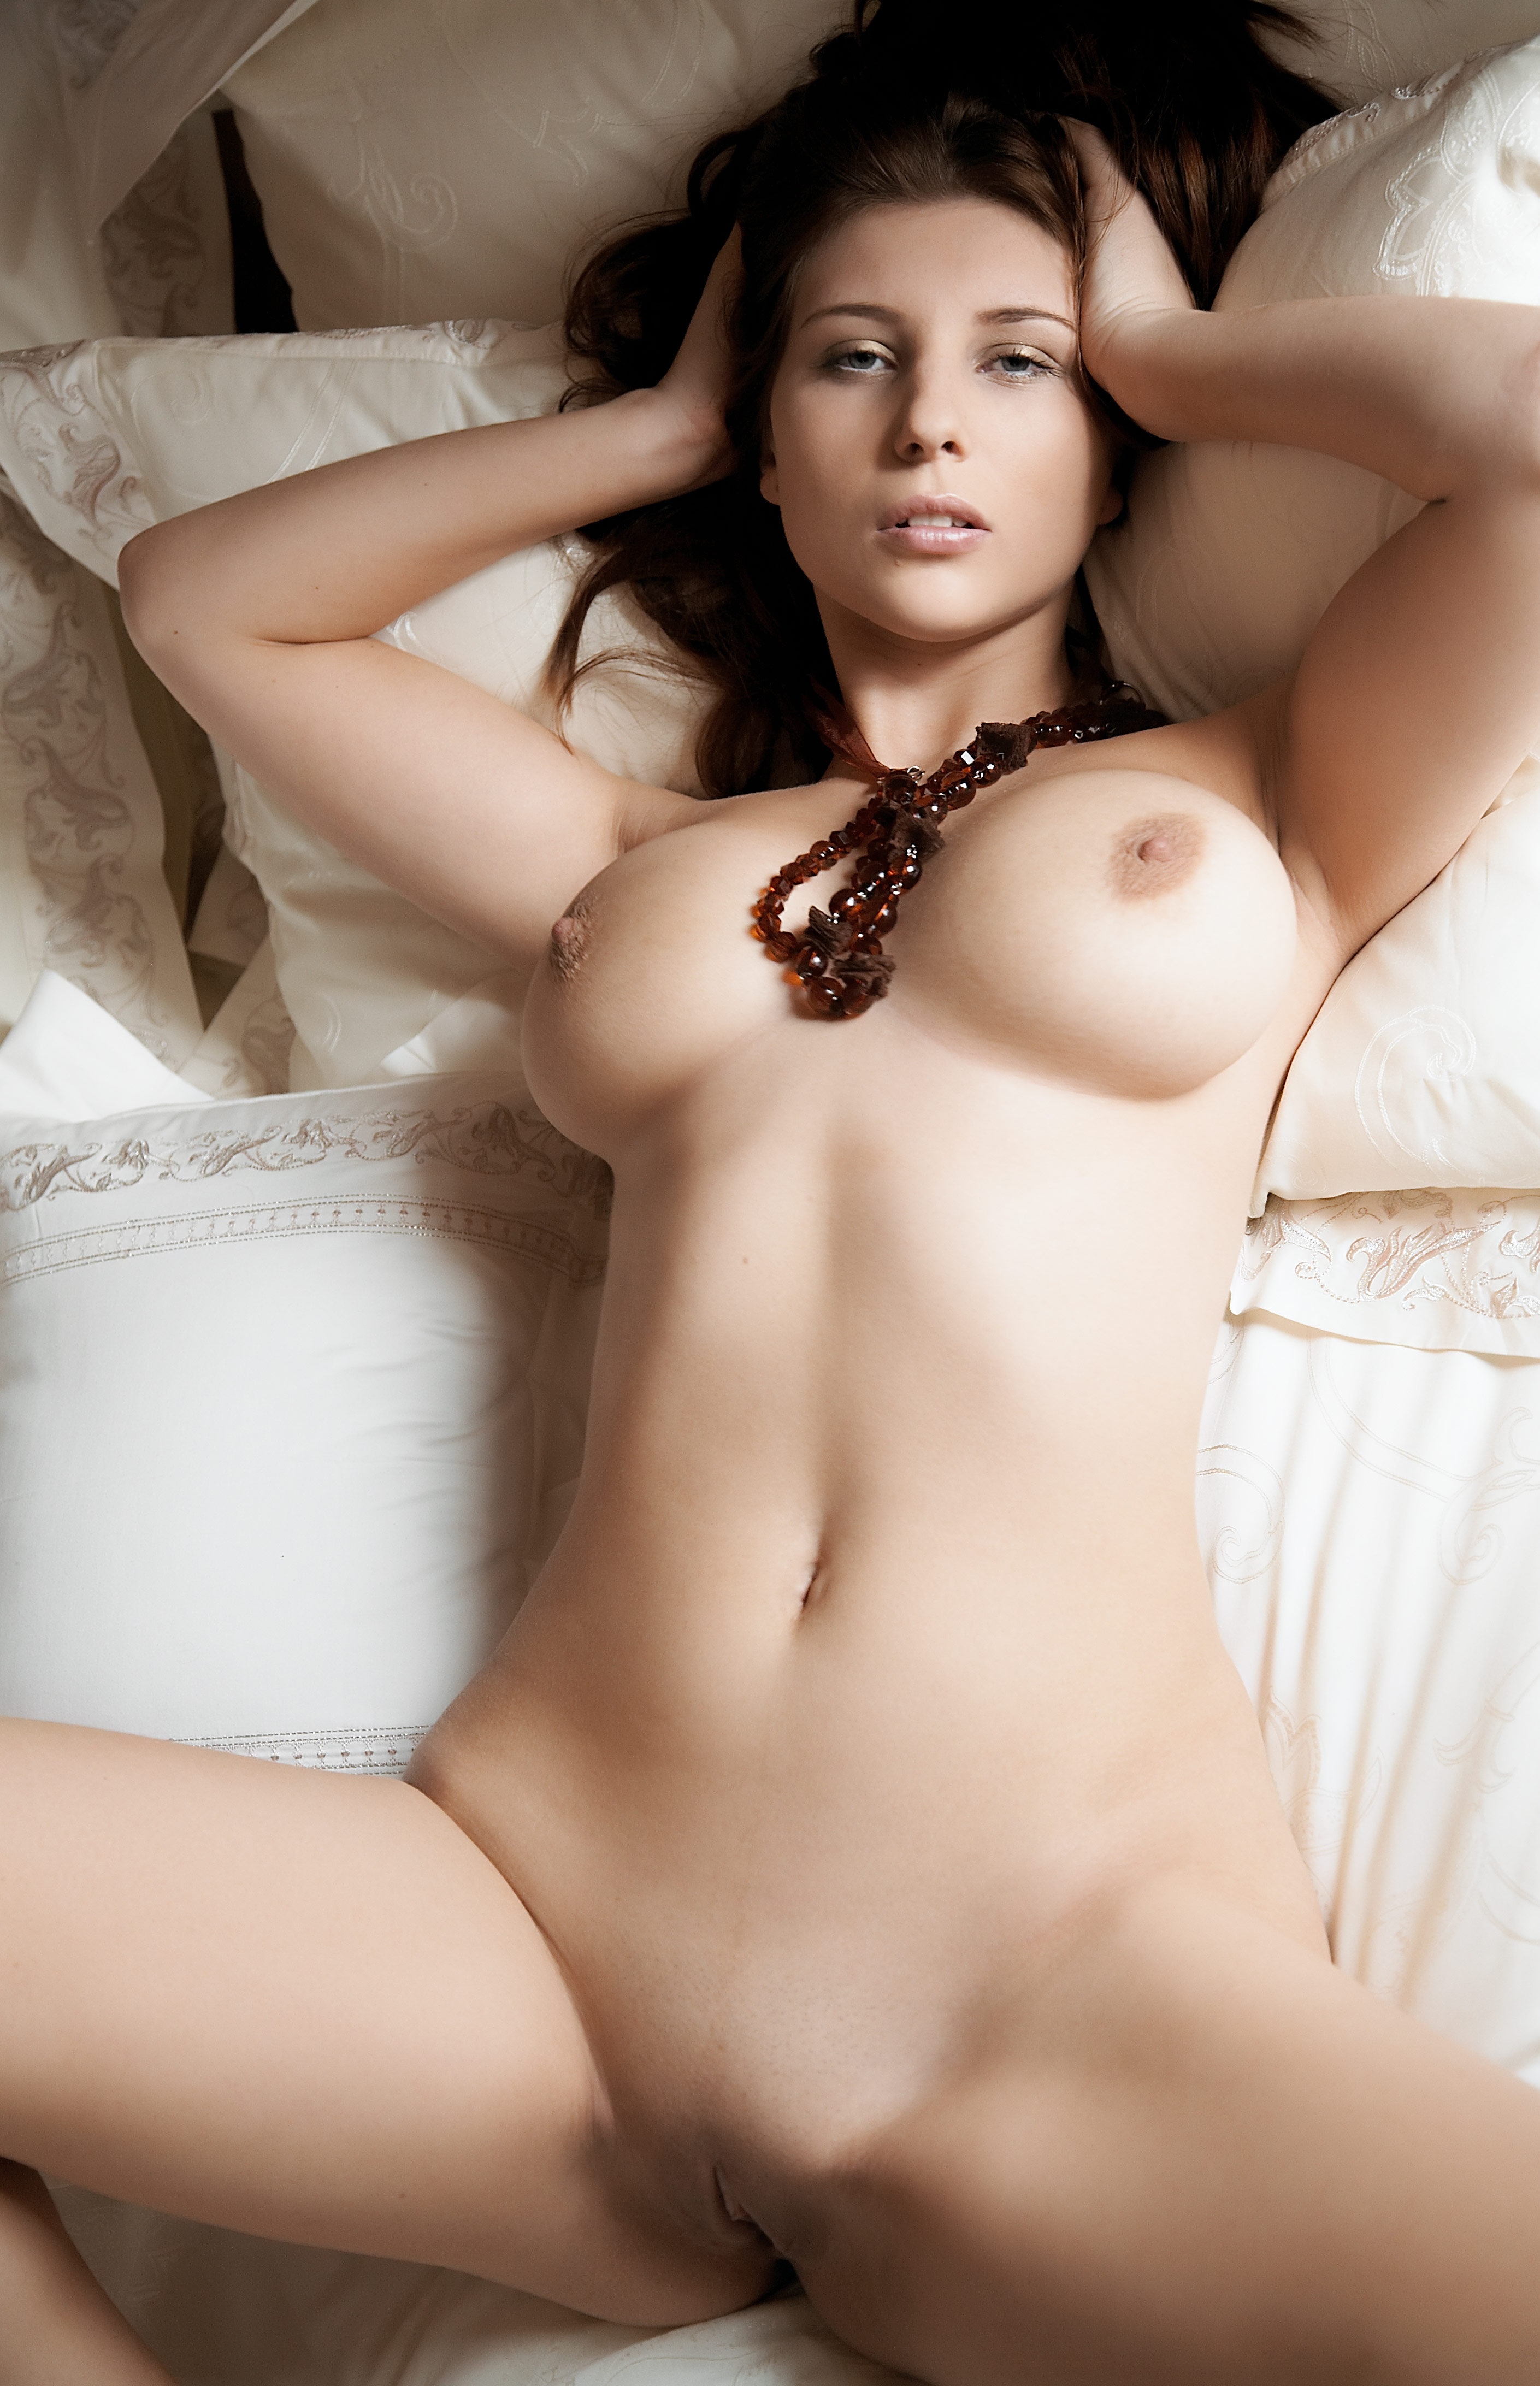 Naked and sexy photos